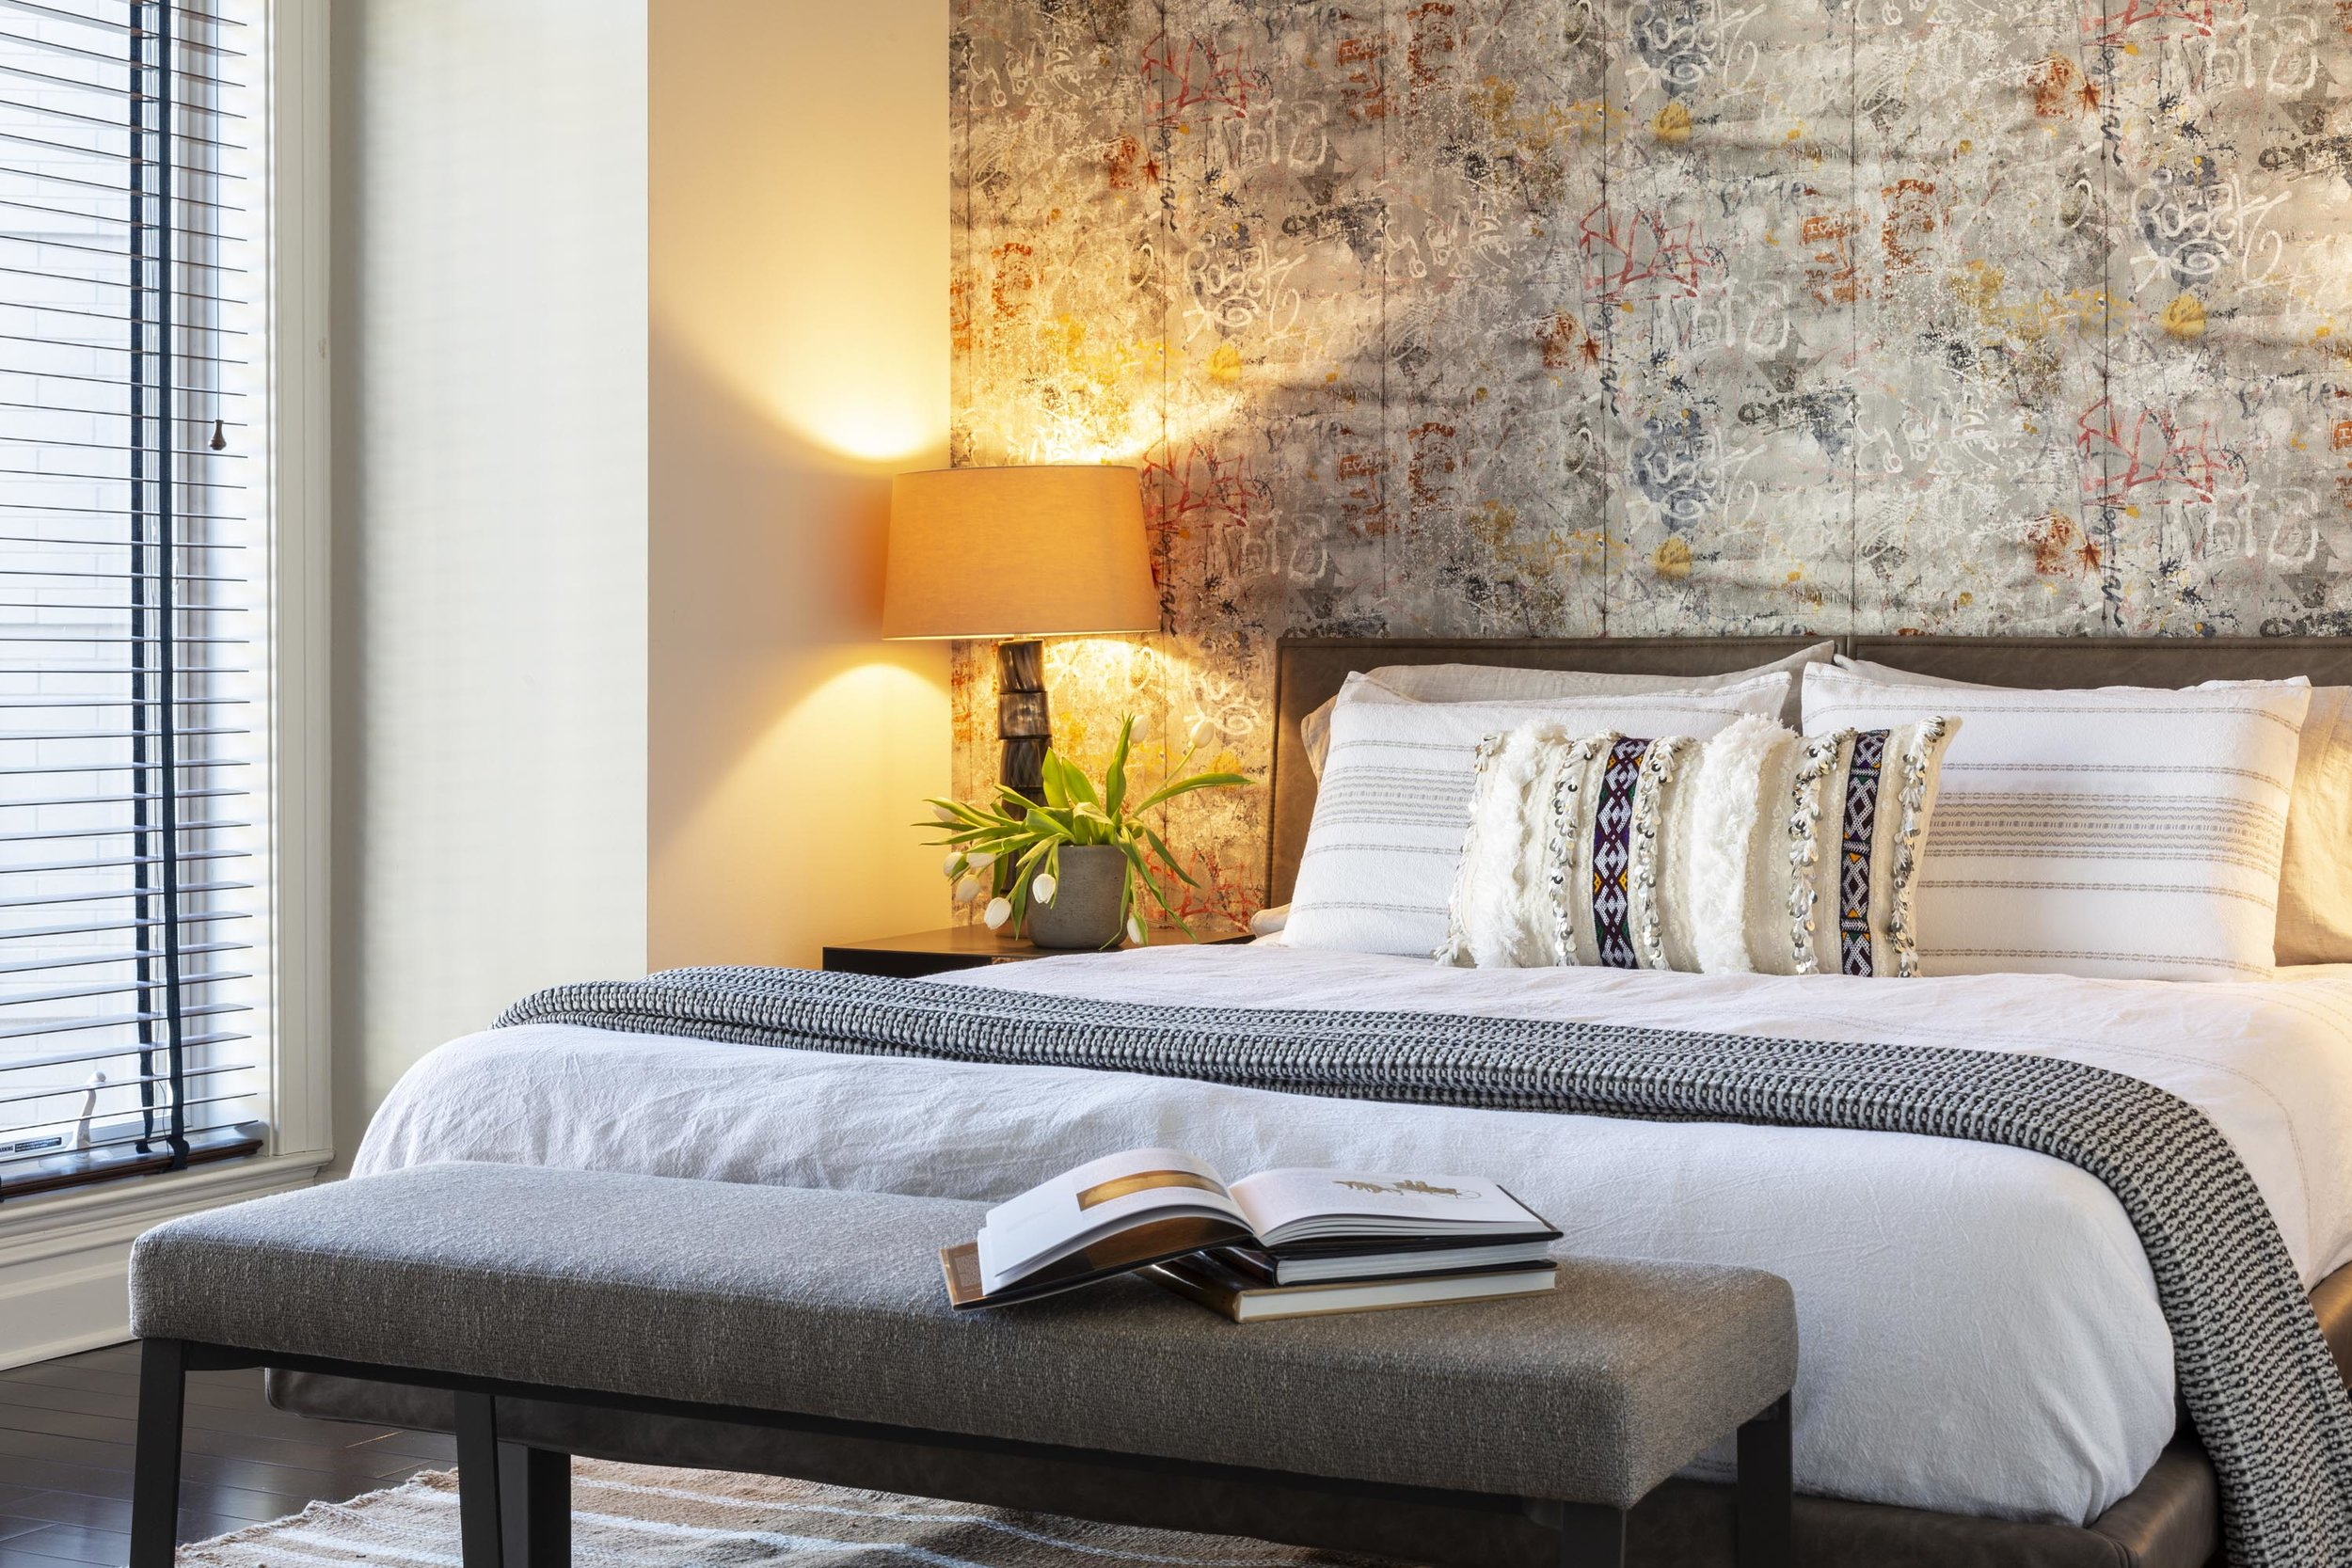 Bedroom with bed, bed bench, table lamp and custom wallpaper